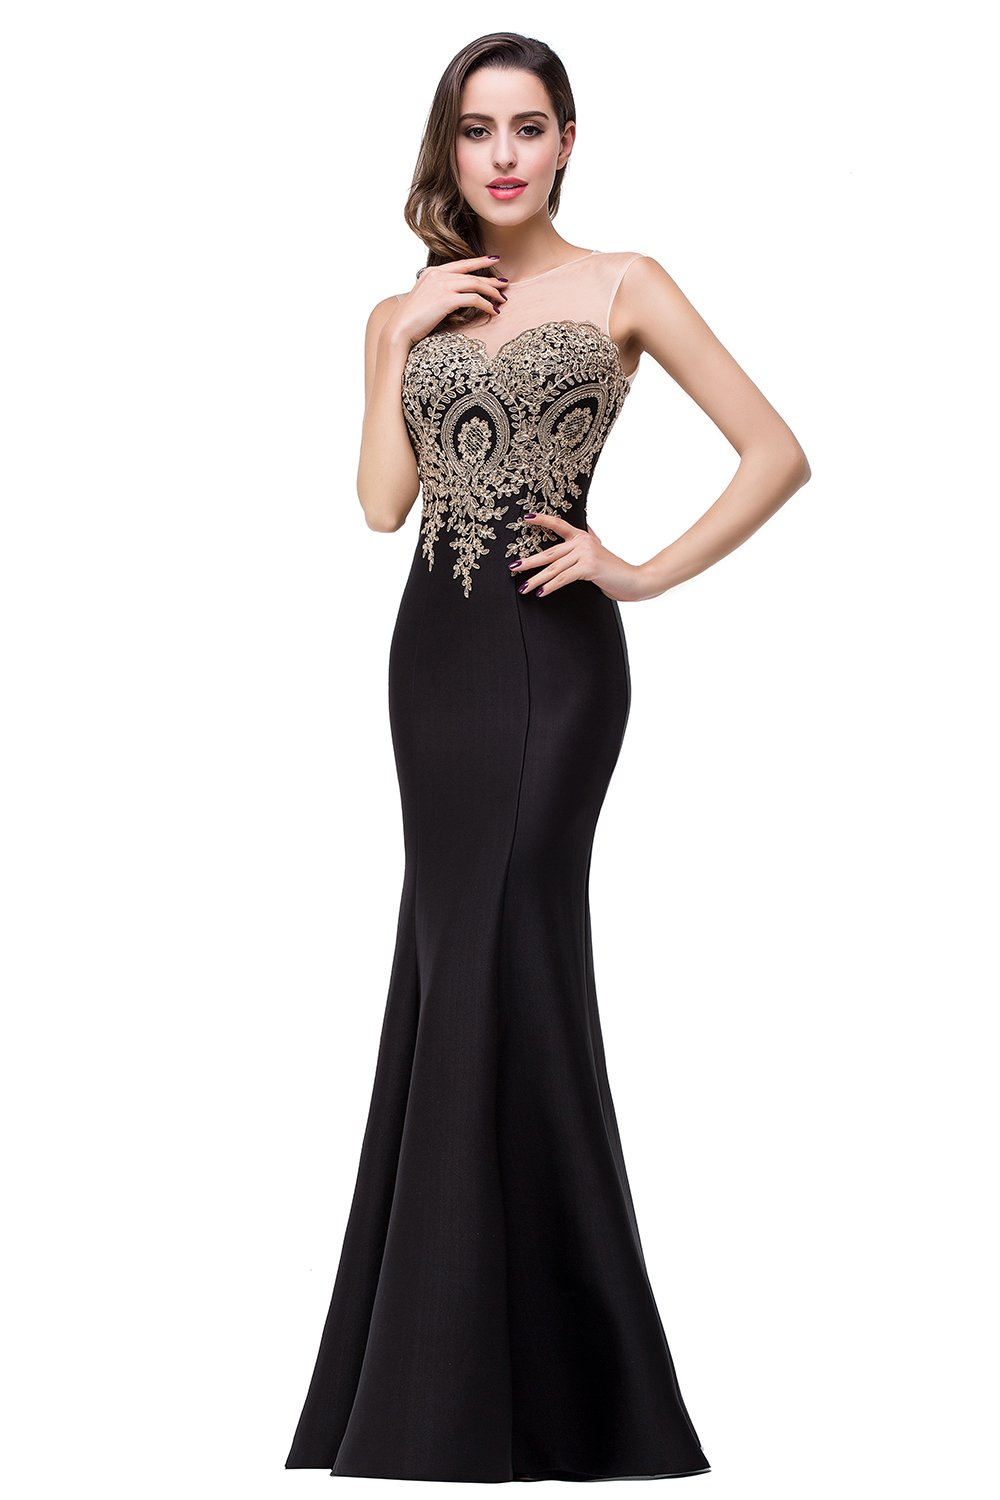 Babyonlinedress Plus Size Women's Mermaid Long Prom Dress Embroidery Evening Dresses for Party